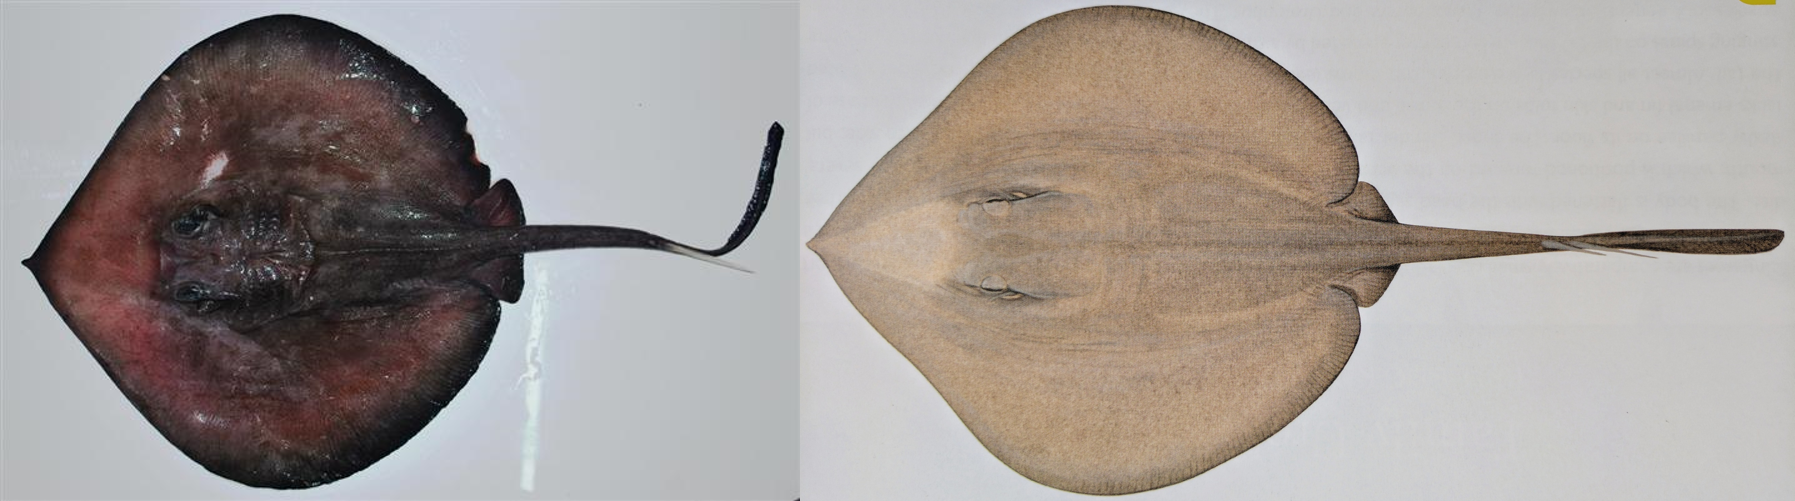 The giant stingaree.  Images:   Bineesh. K. K [CC BY 3.0 (http://creativecommons.org/licenses/by/3.0)], via Wikimedia Commons (left) & Lindsay Marshall as seen in  Rays of the World  (2016), CSIRO Publishing (right).